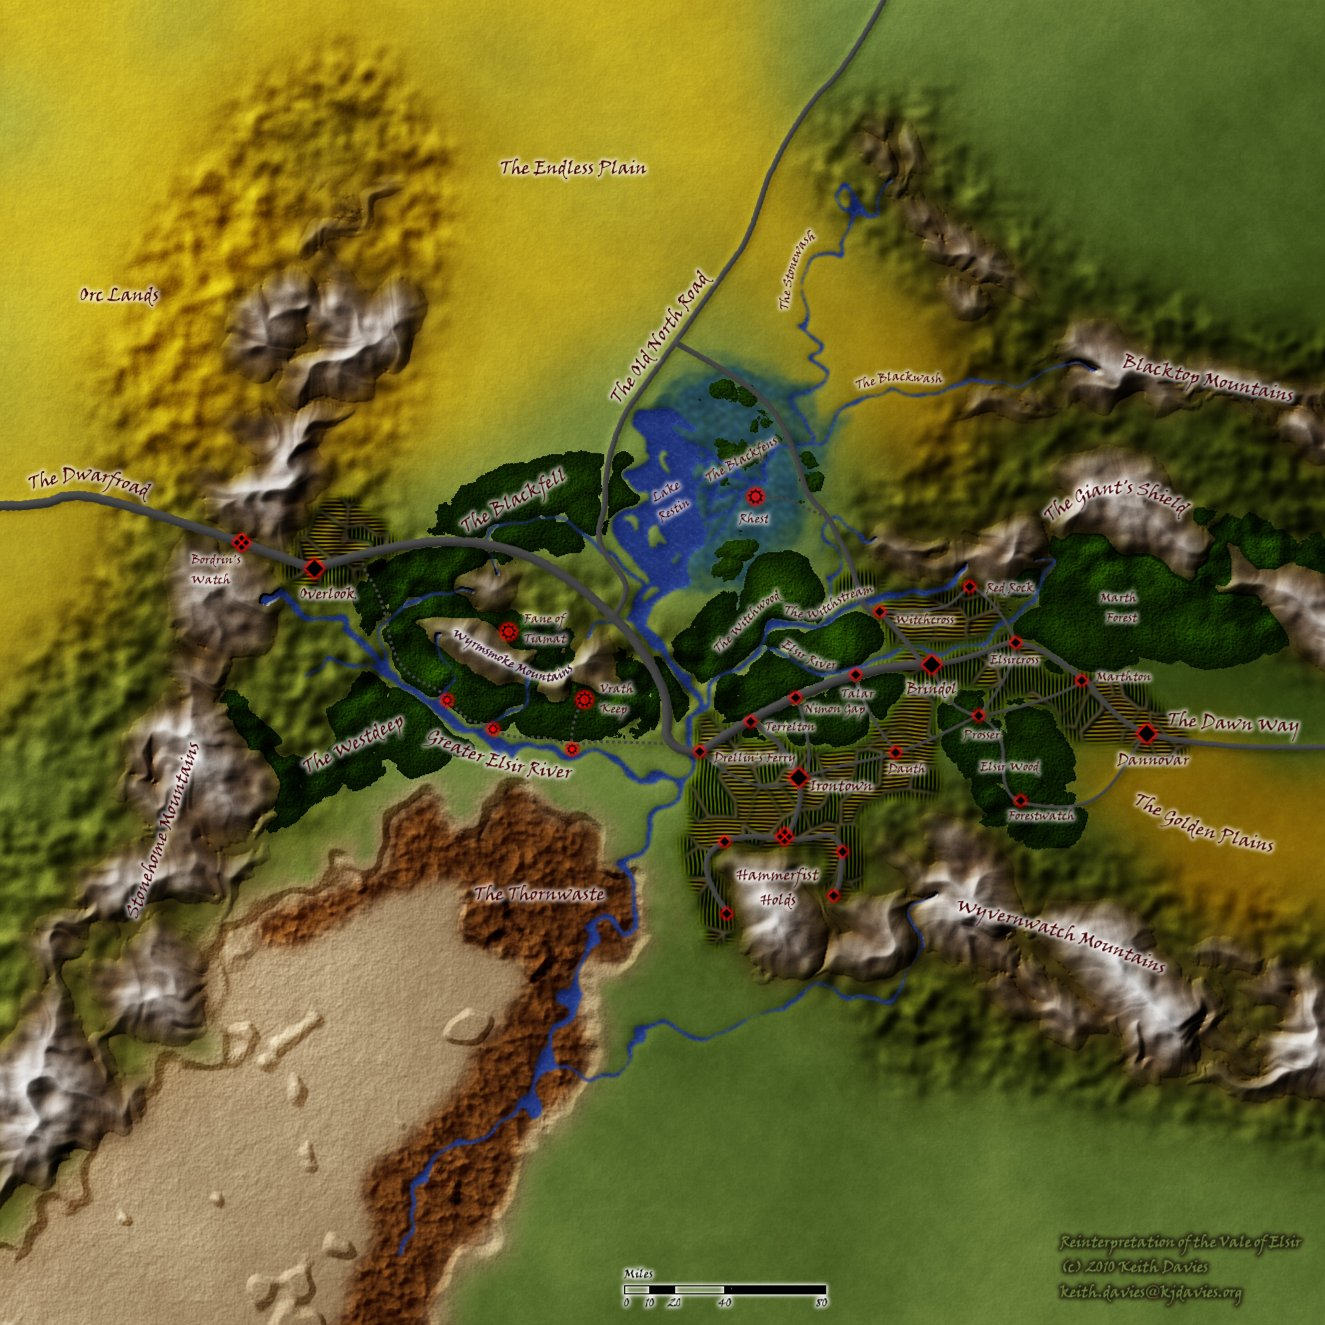 Map of Elsir Vale (c) 2010 Keith Davies, Used with Permission